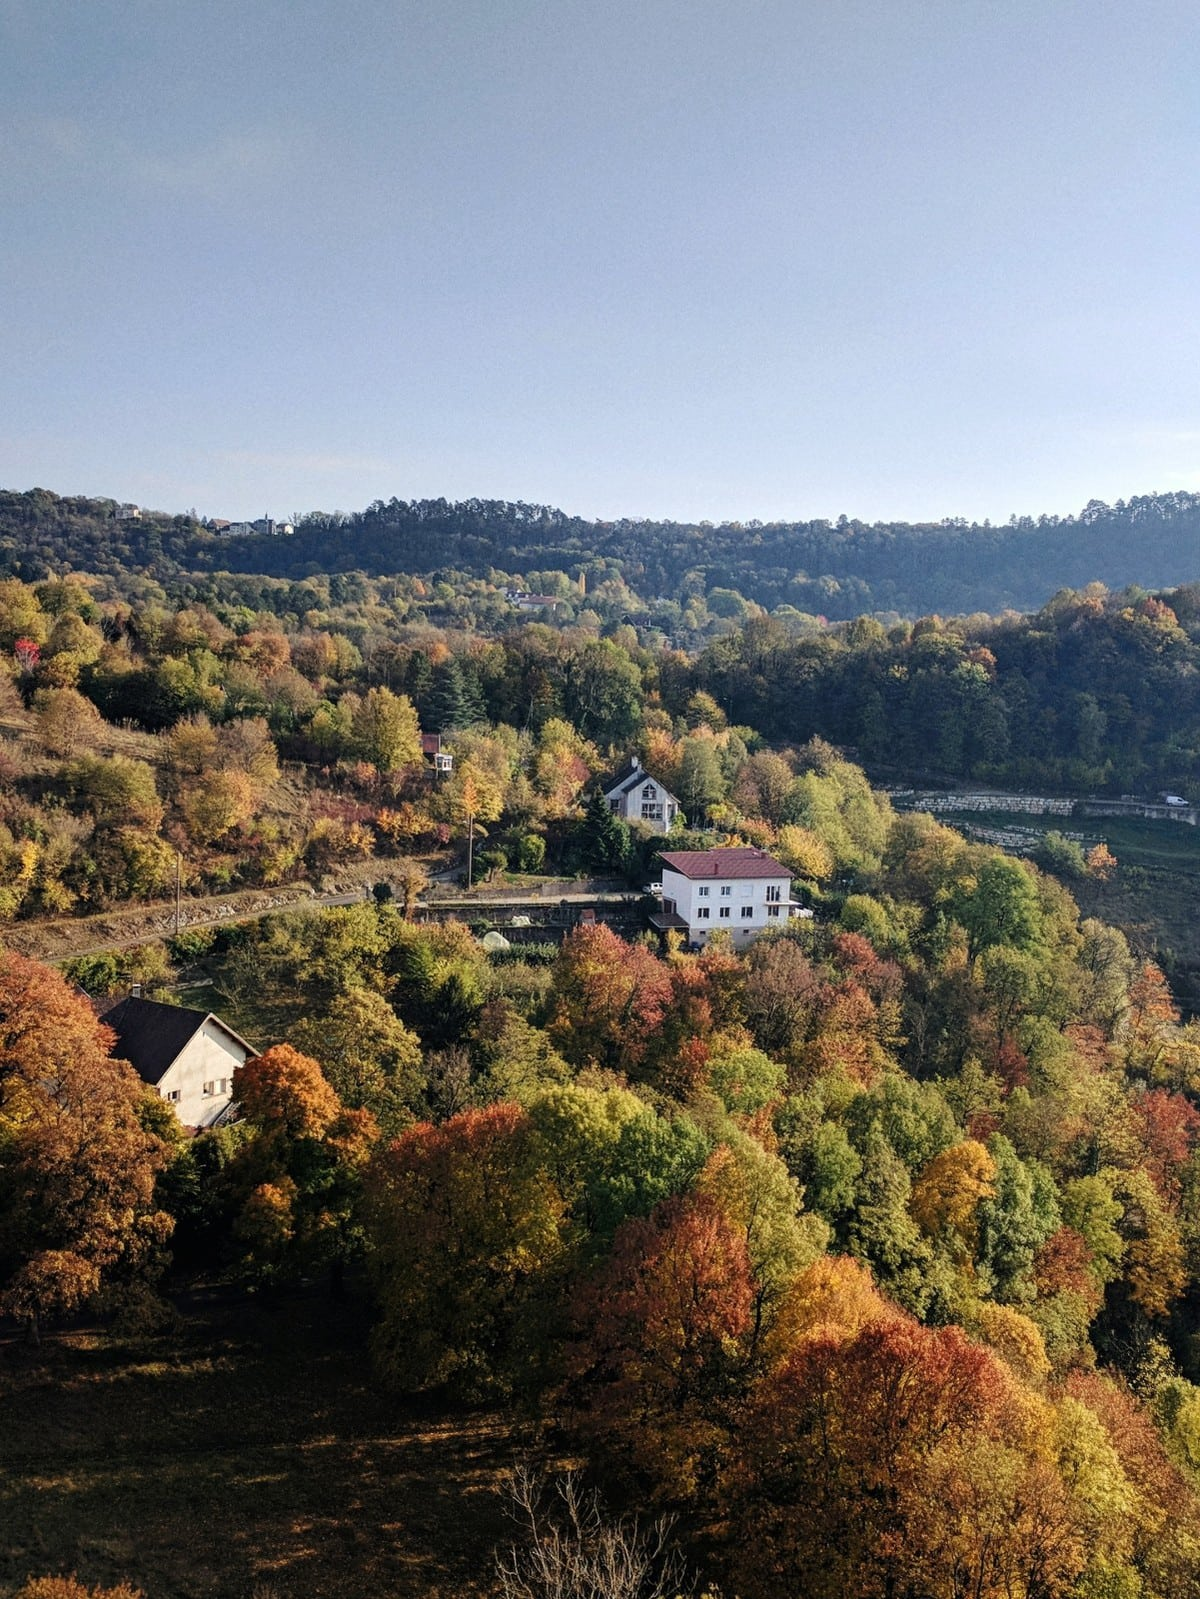 View from the Citadelle de Besançon in the fall